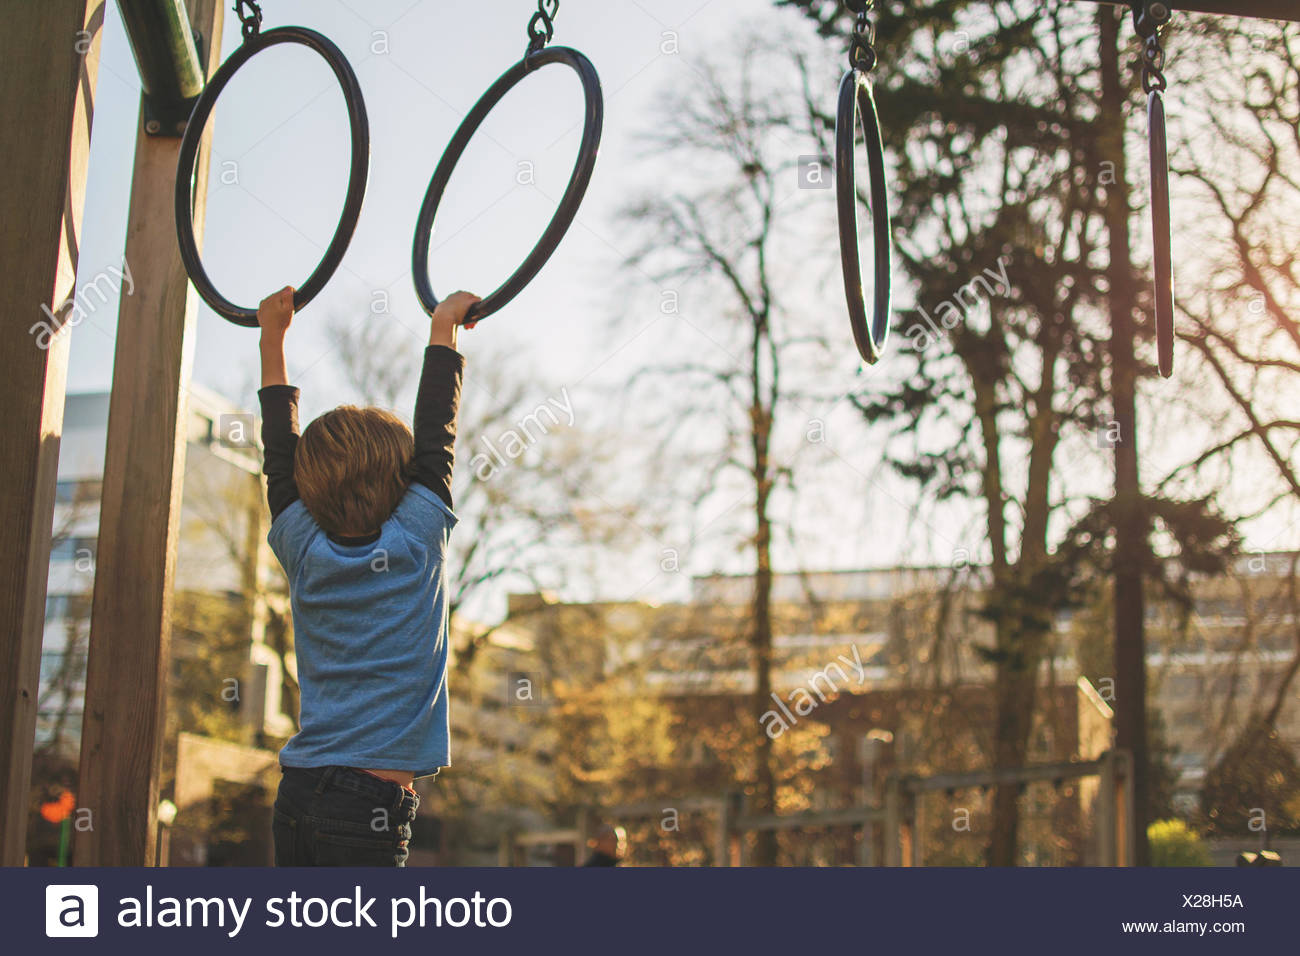 Boy hanging from rings at playground - Stock Image